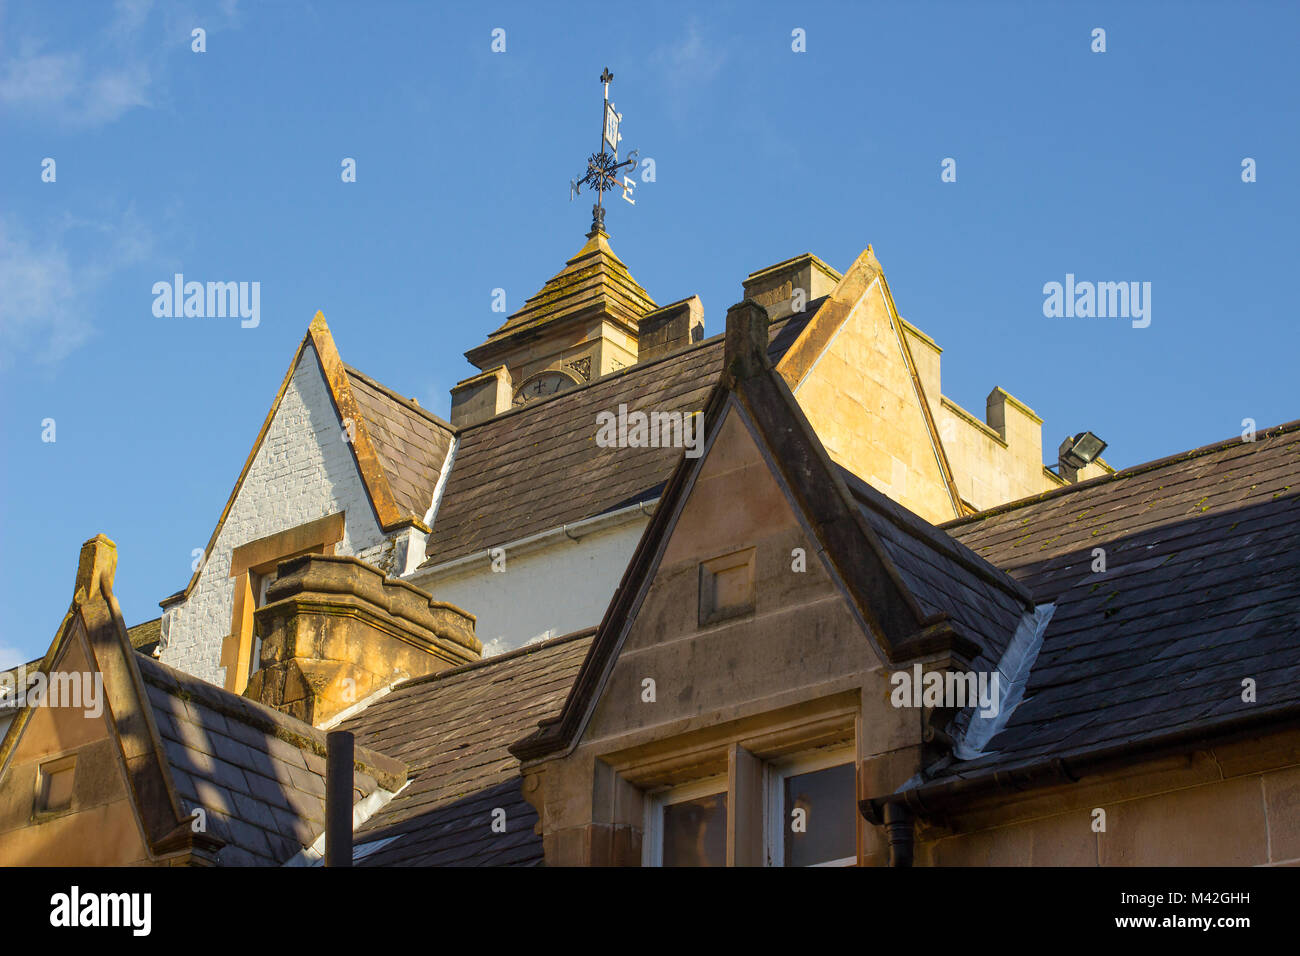 A detailed view of the Bangor Town Hall and Civic Centre in County Down Northern Ireland showing its ornate architectural - Stock Image